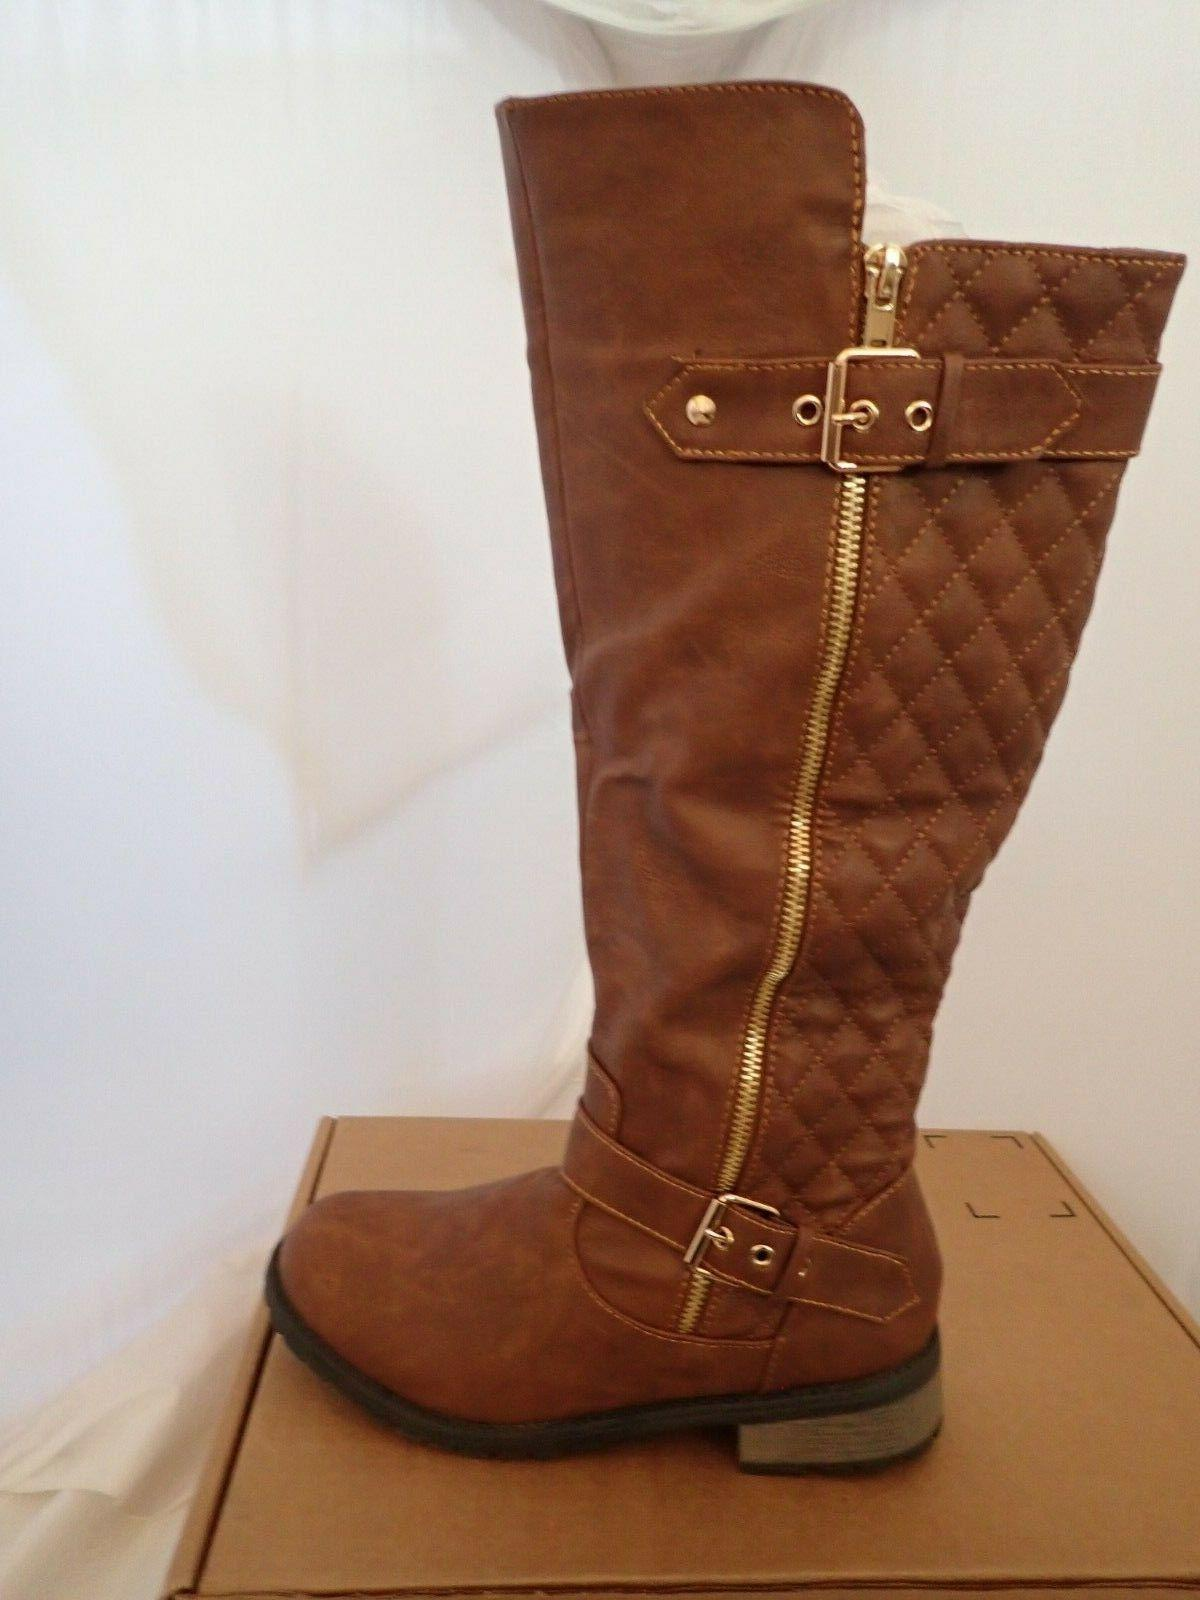 Single right boot size 8 Lady riding Boot for amputee